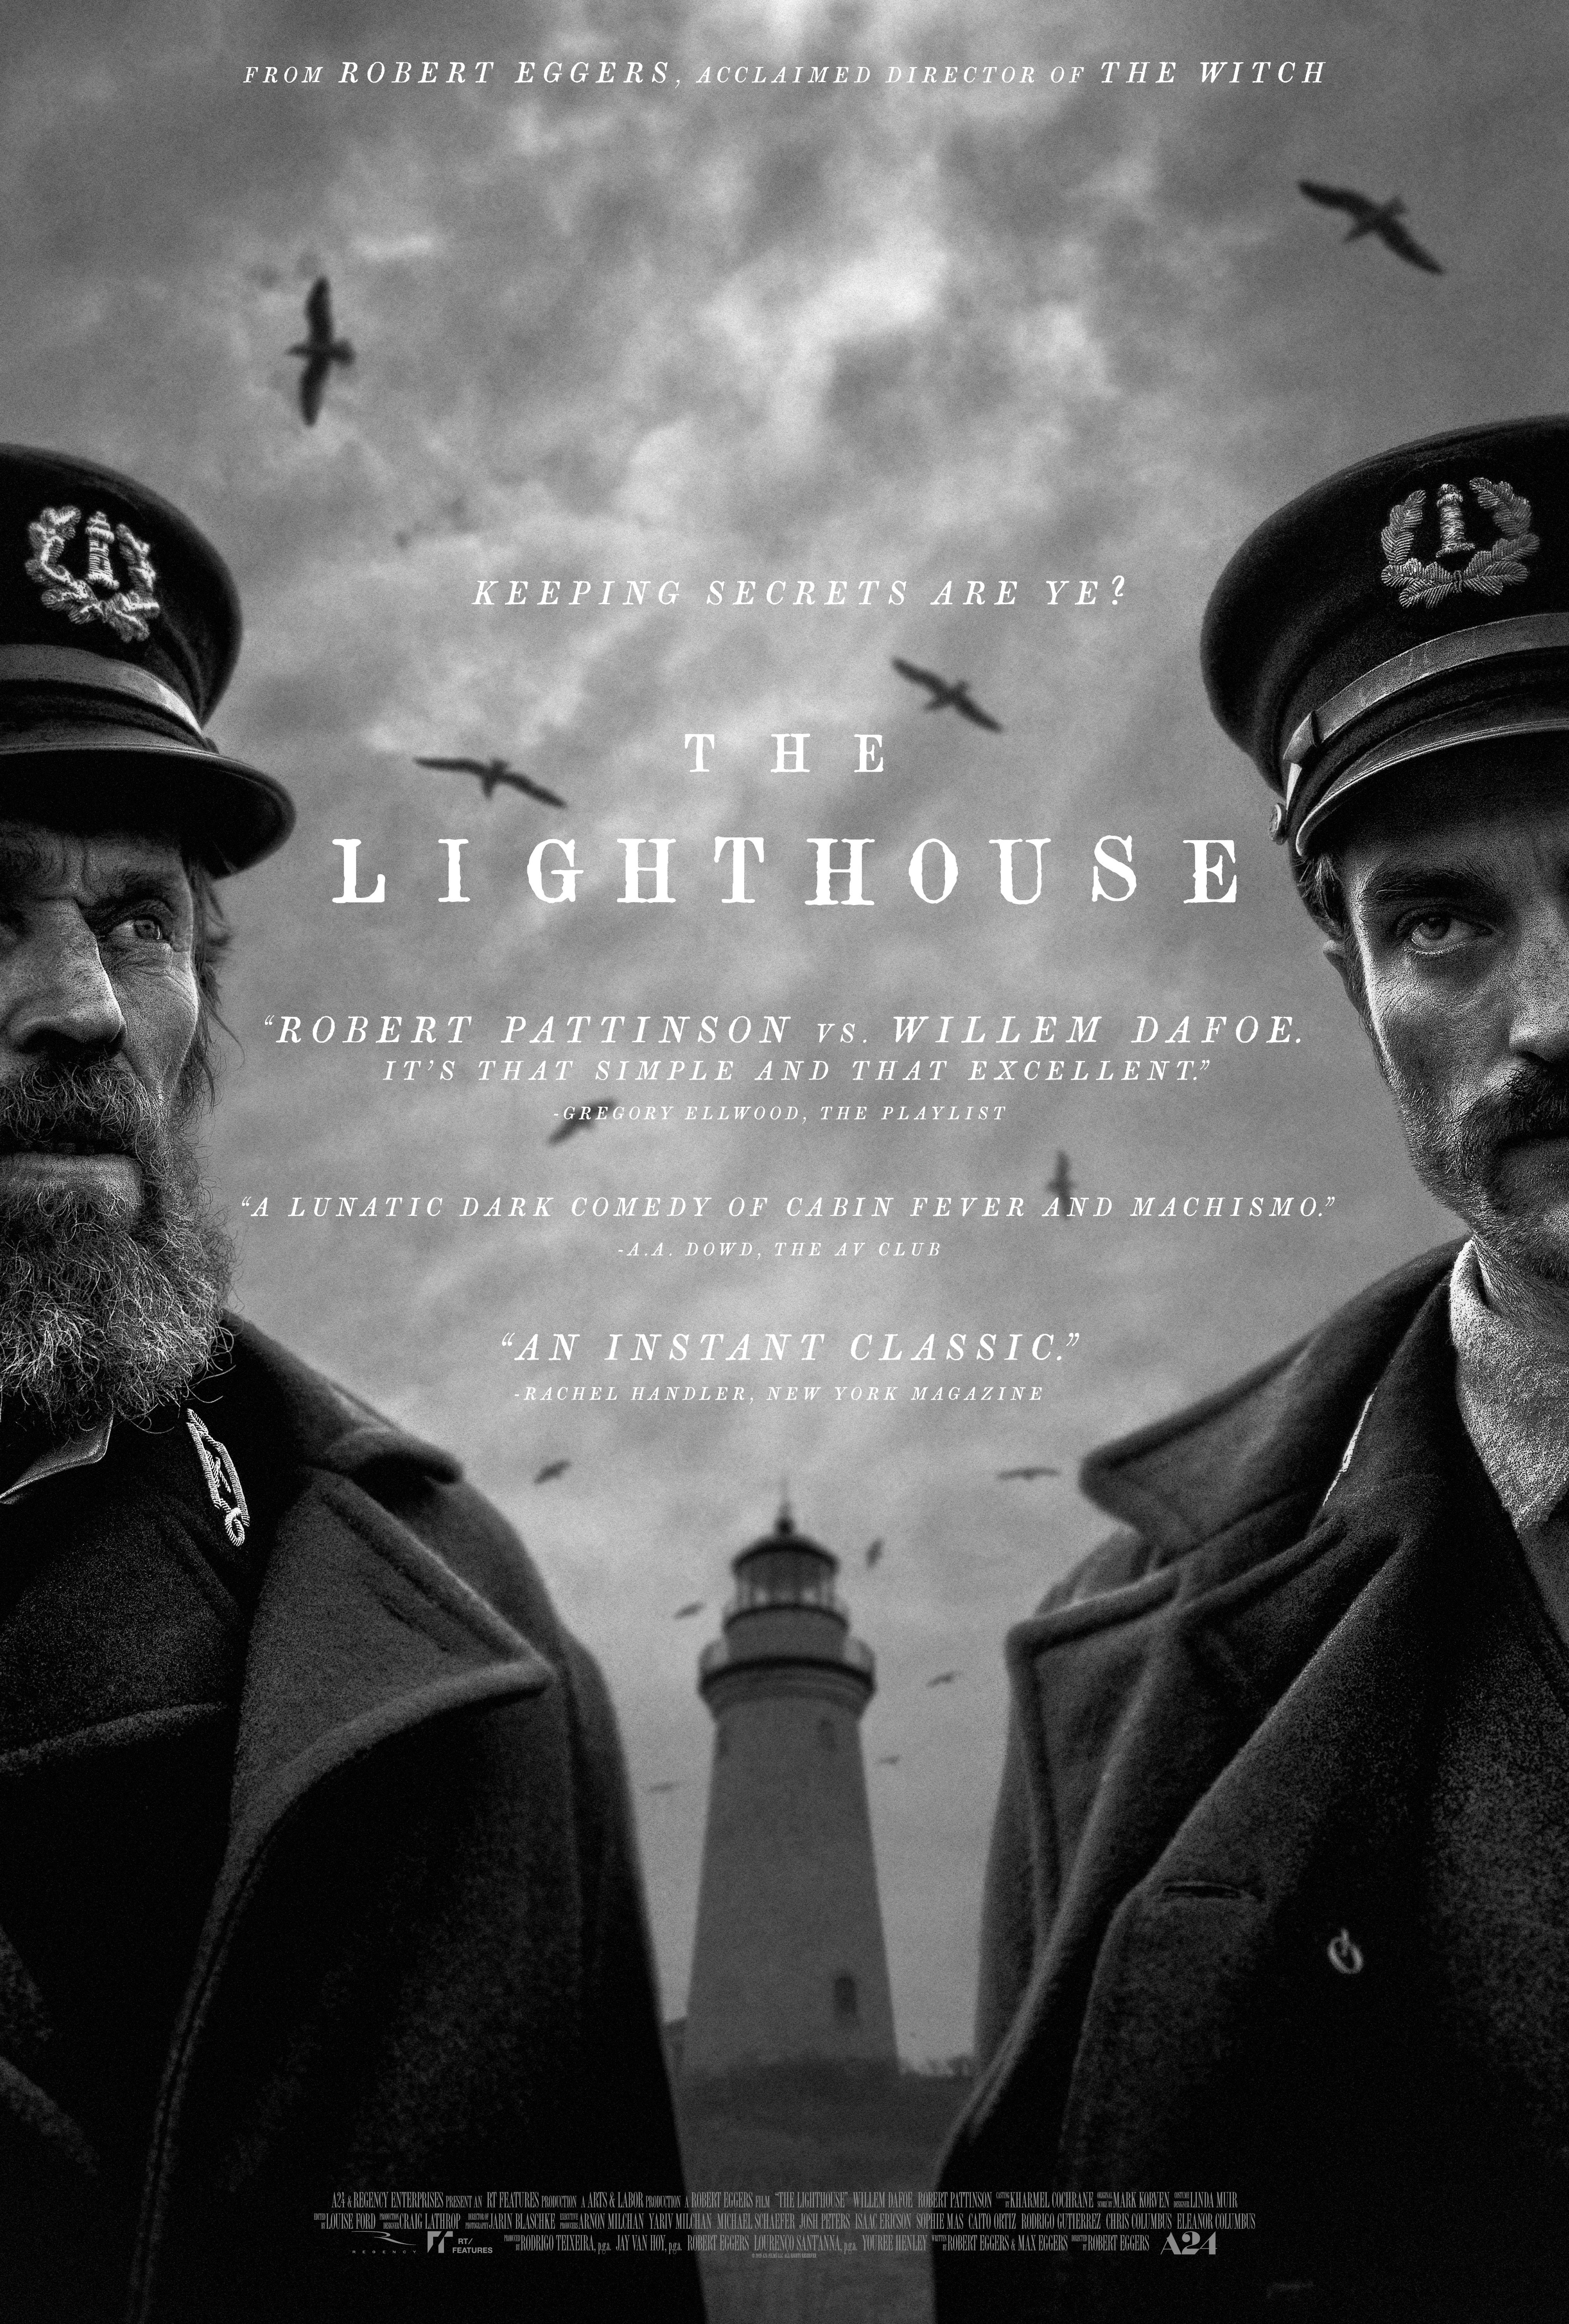 """Keeping Secrets Are Ye?"" Watch the New Trailer for Robert Eggers' THE LIGHTHOUSE"